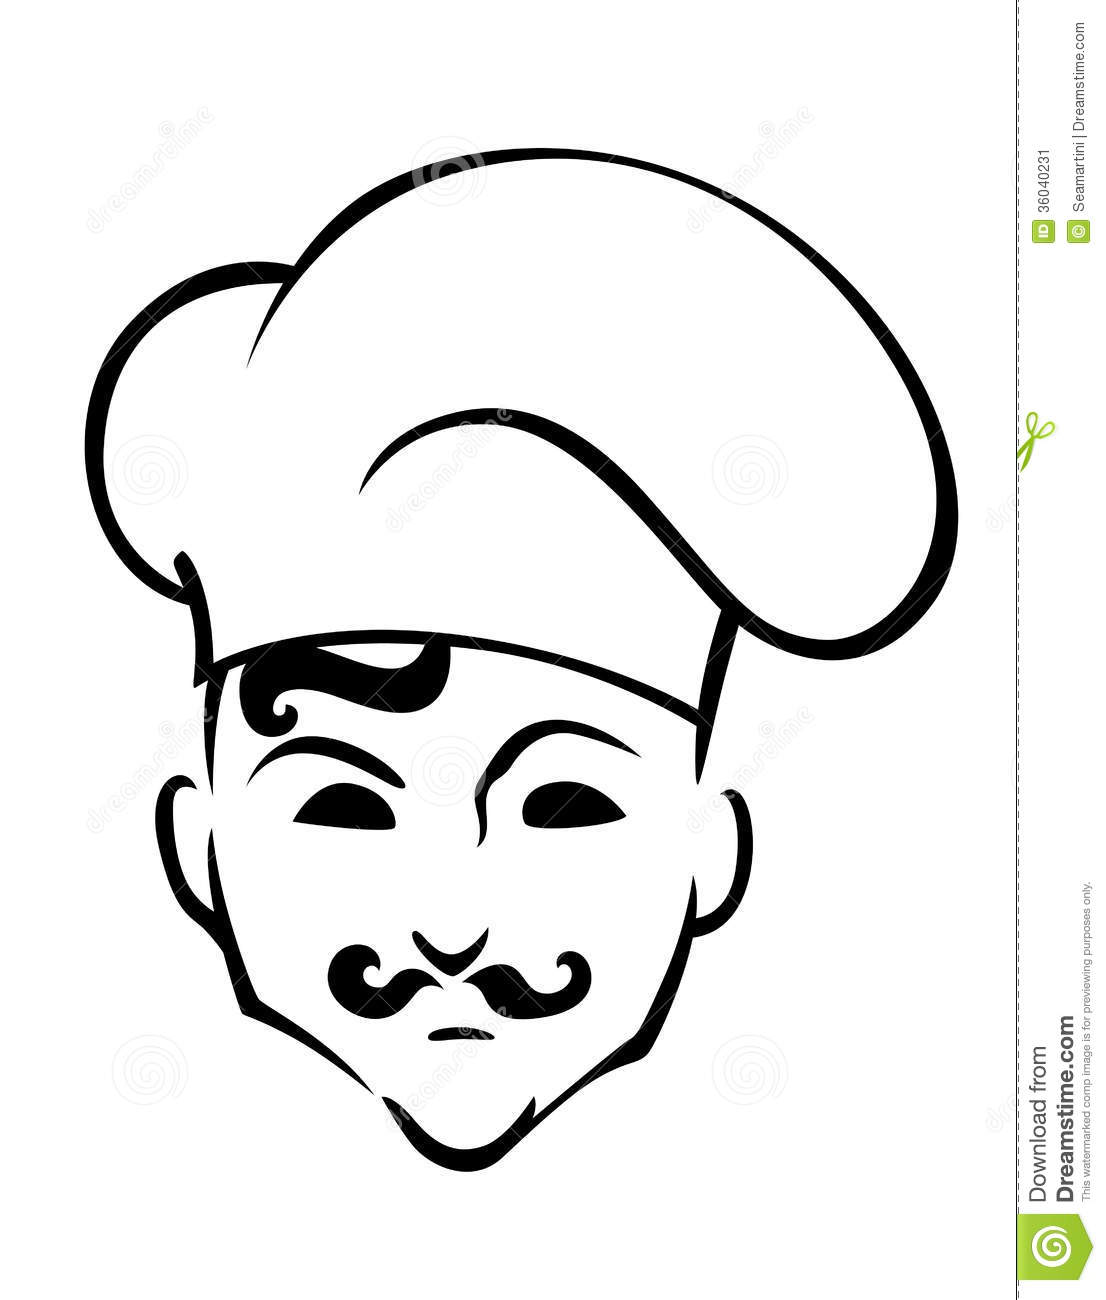 coloring pages of chef hats - photo #34